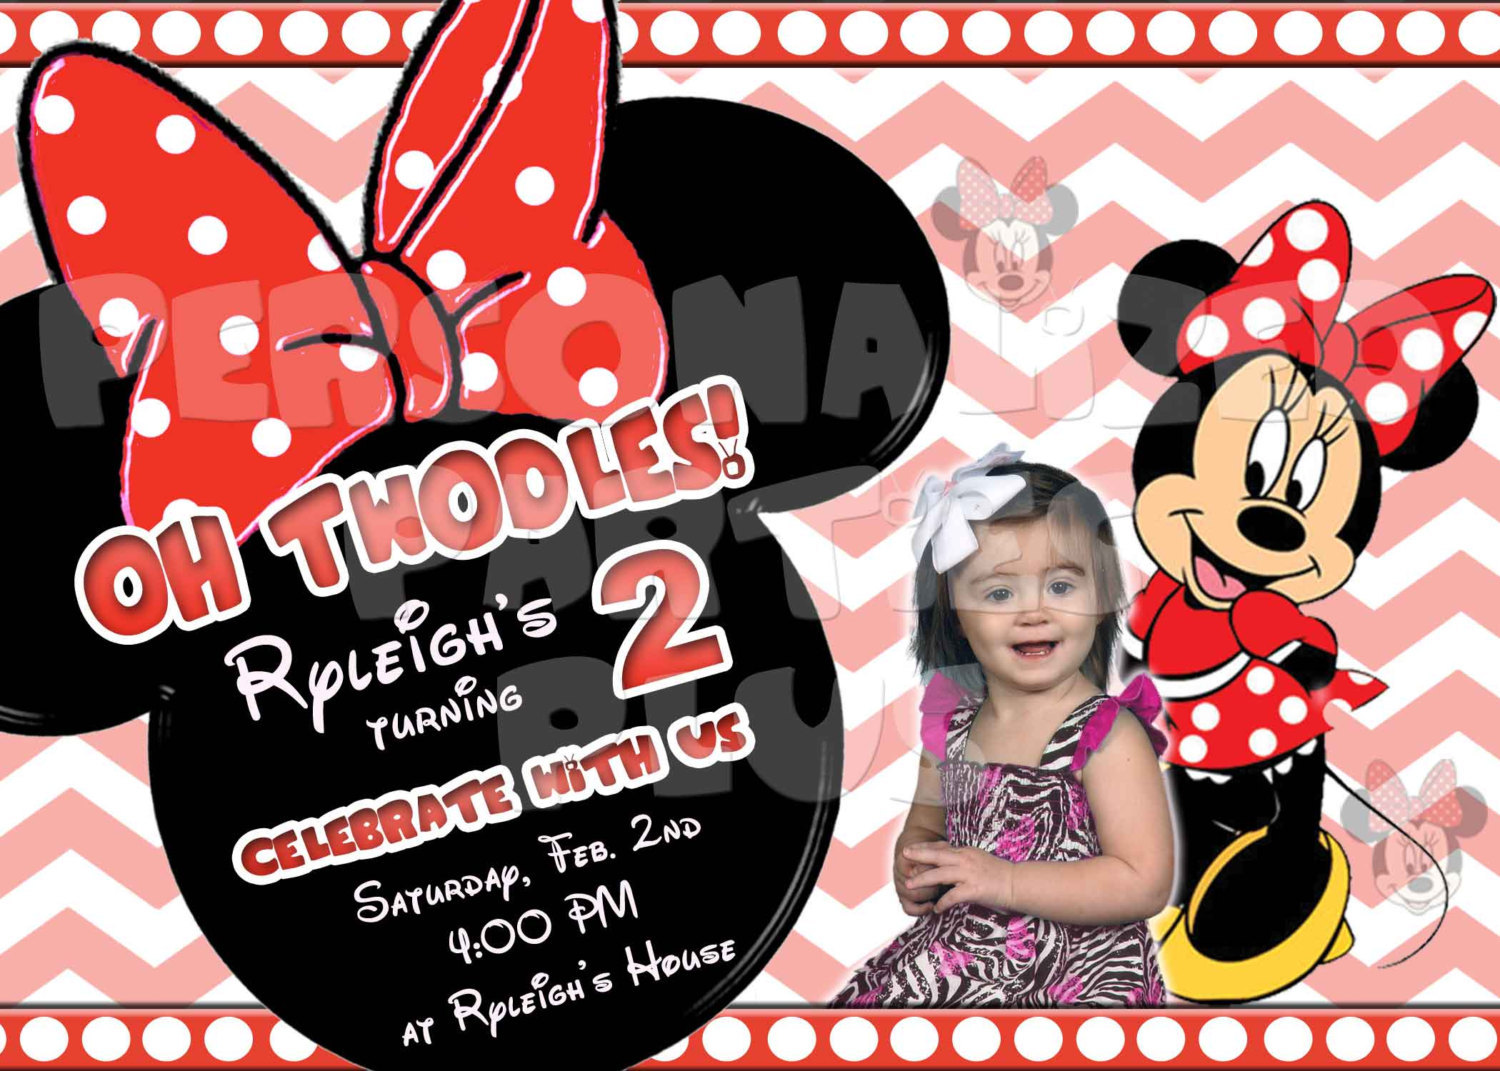 Minnie Mouse invitations in pink or red